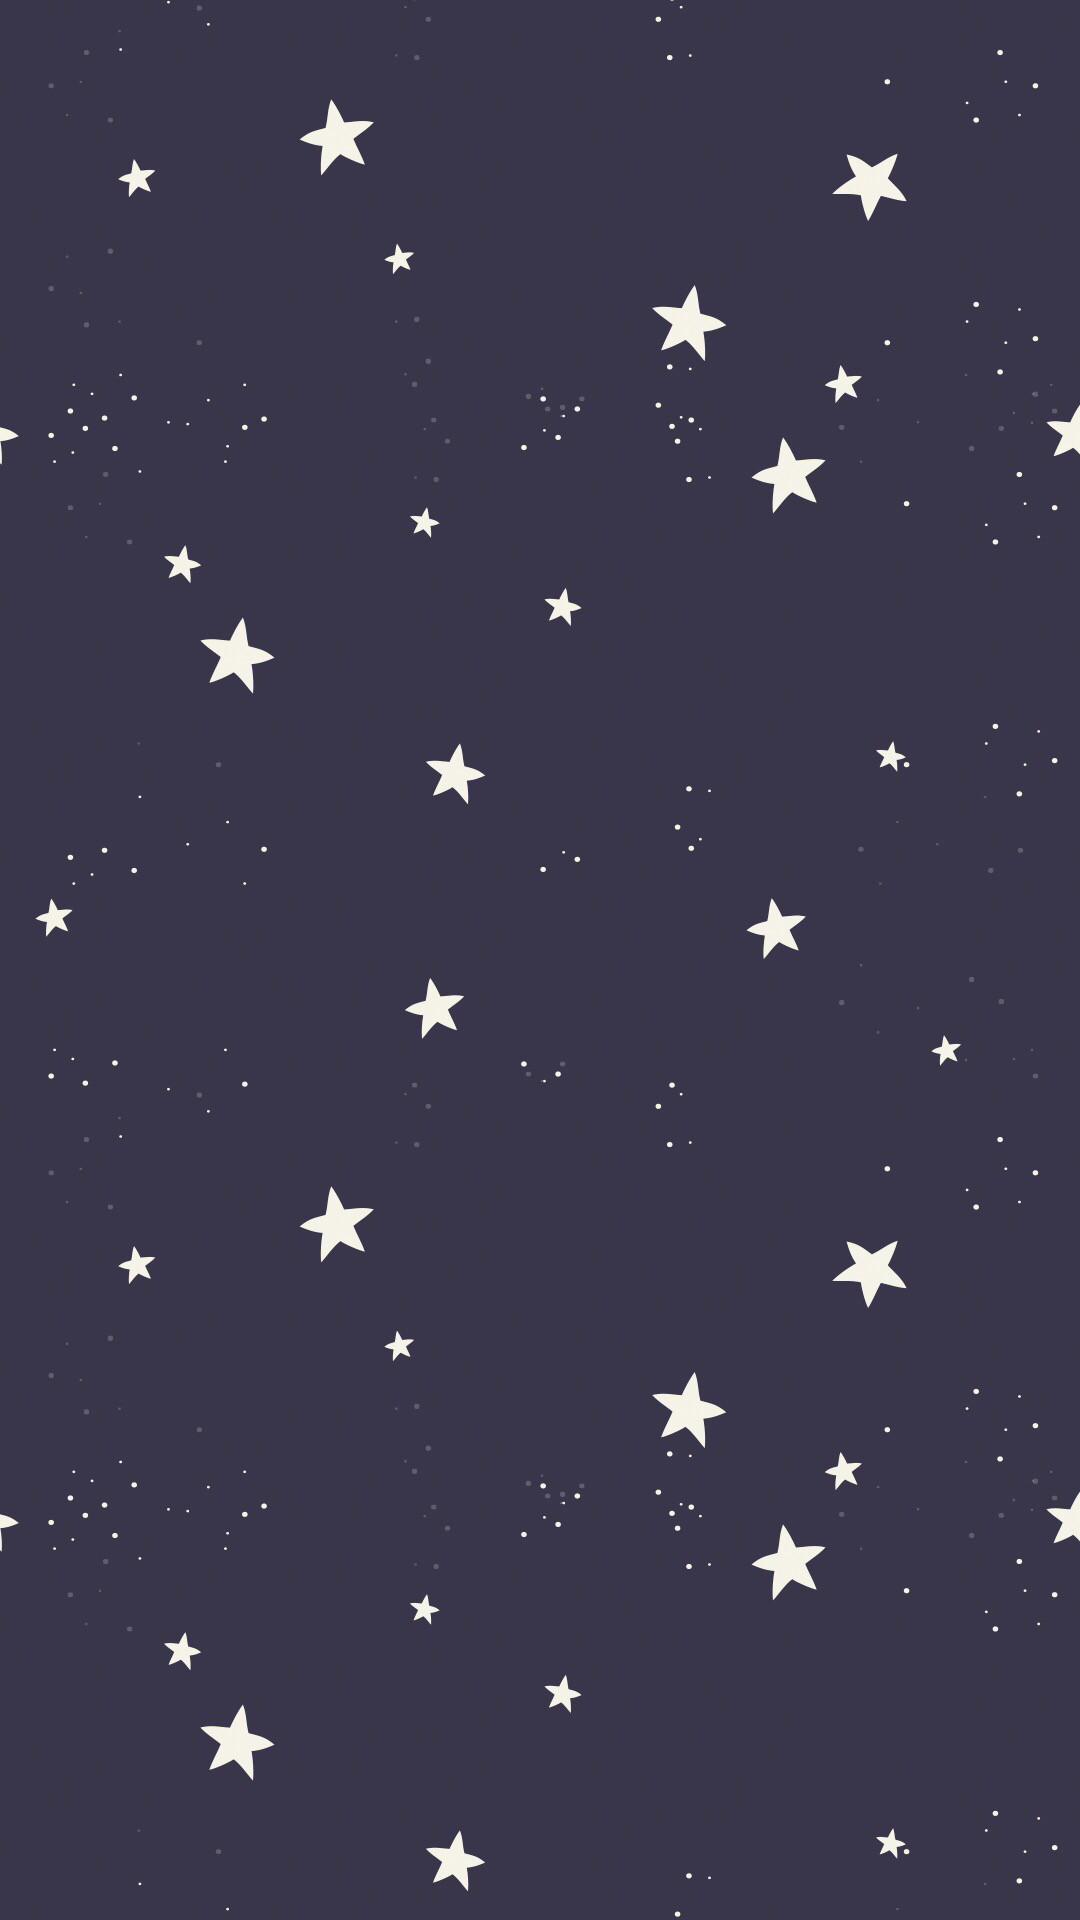 Simple stars pattern wallpaper great for backgrounds on iPhones and iPads